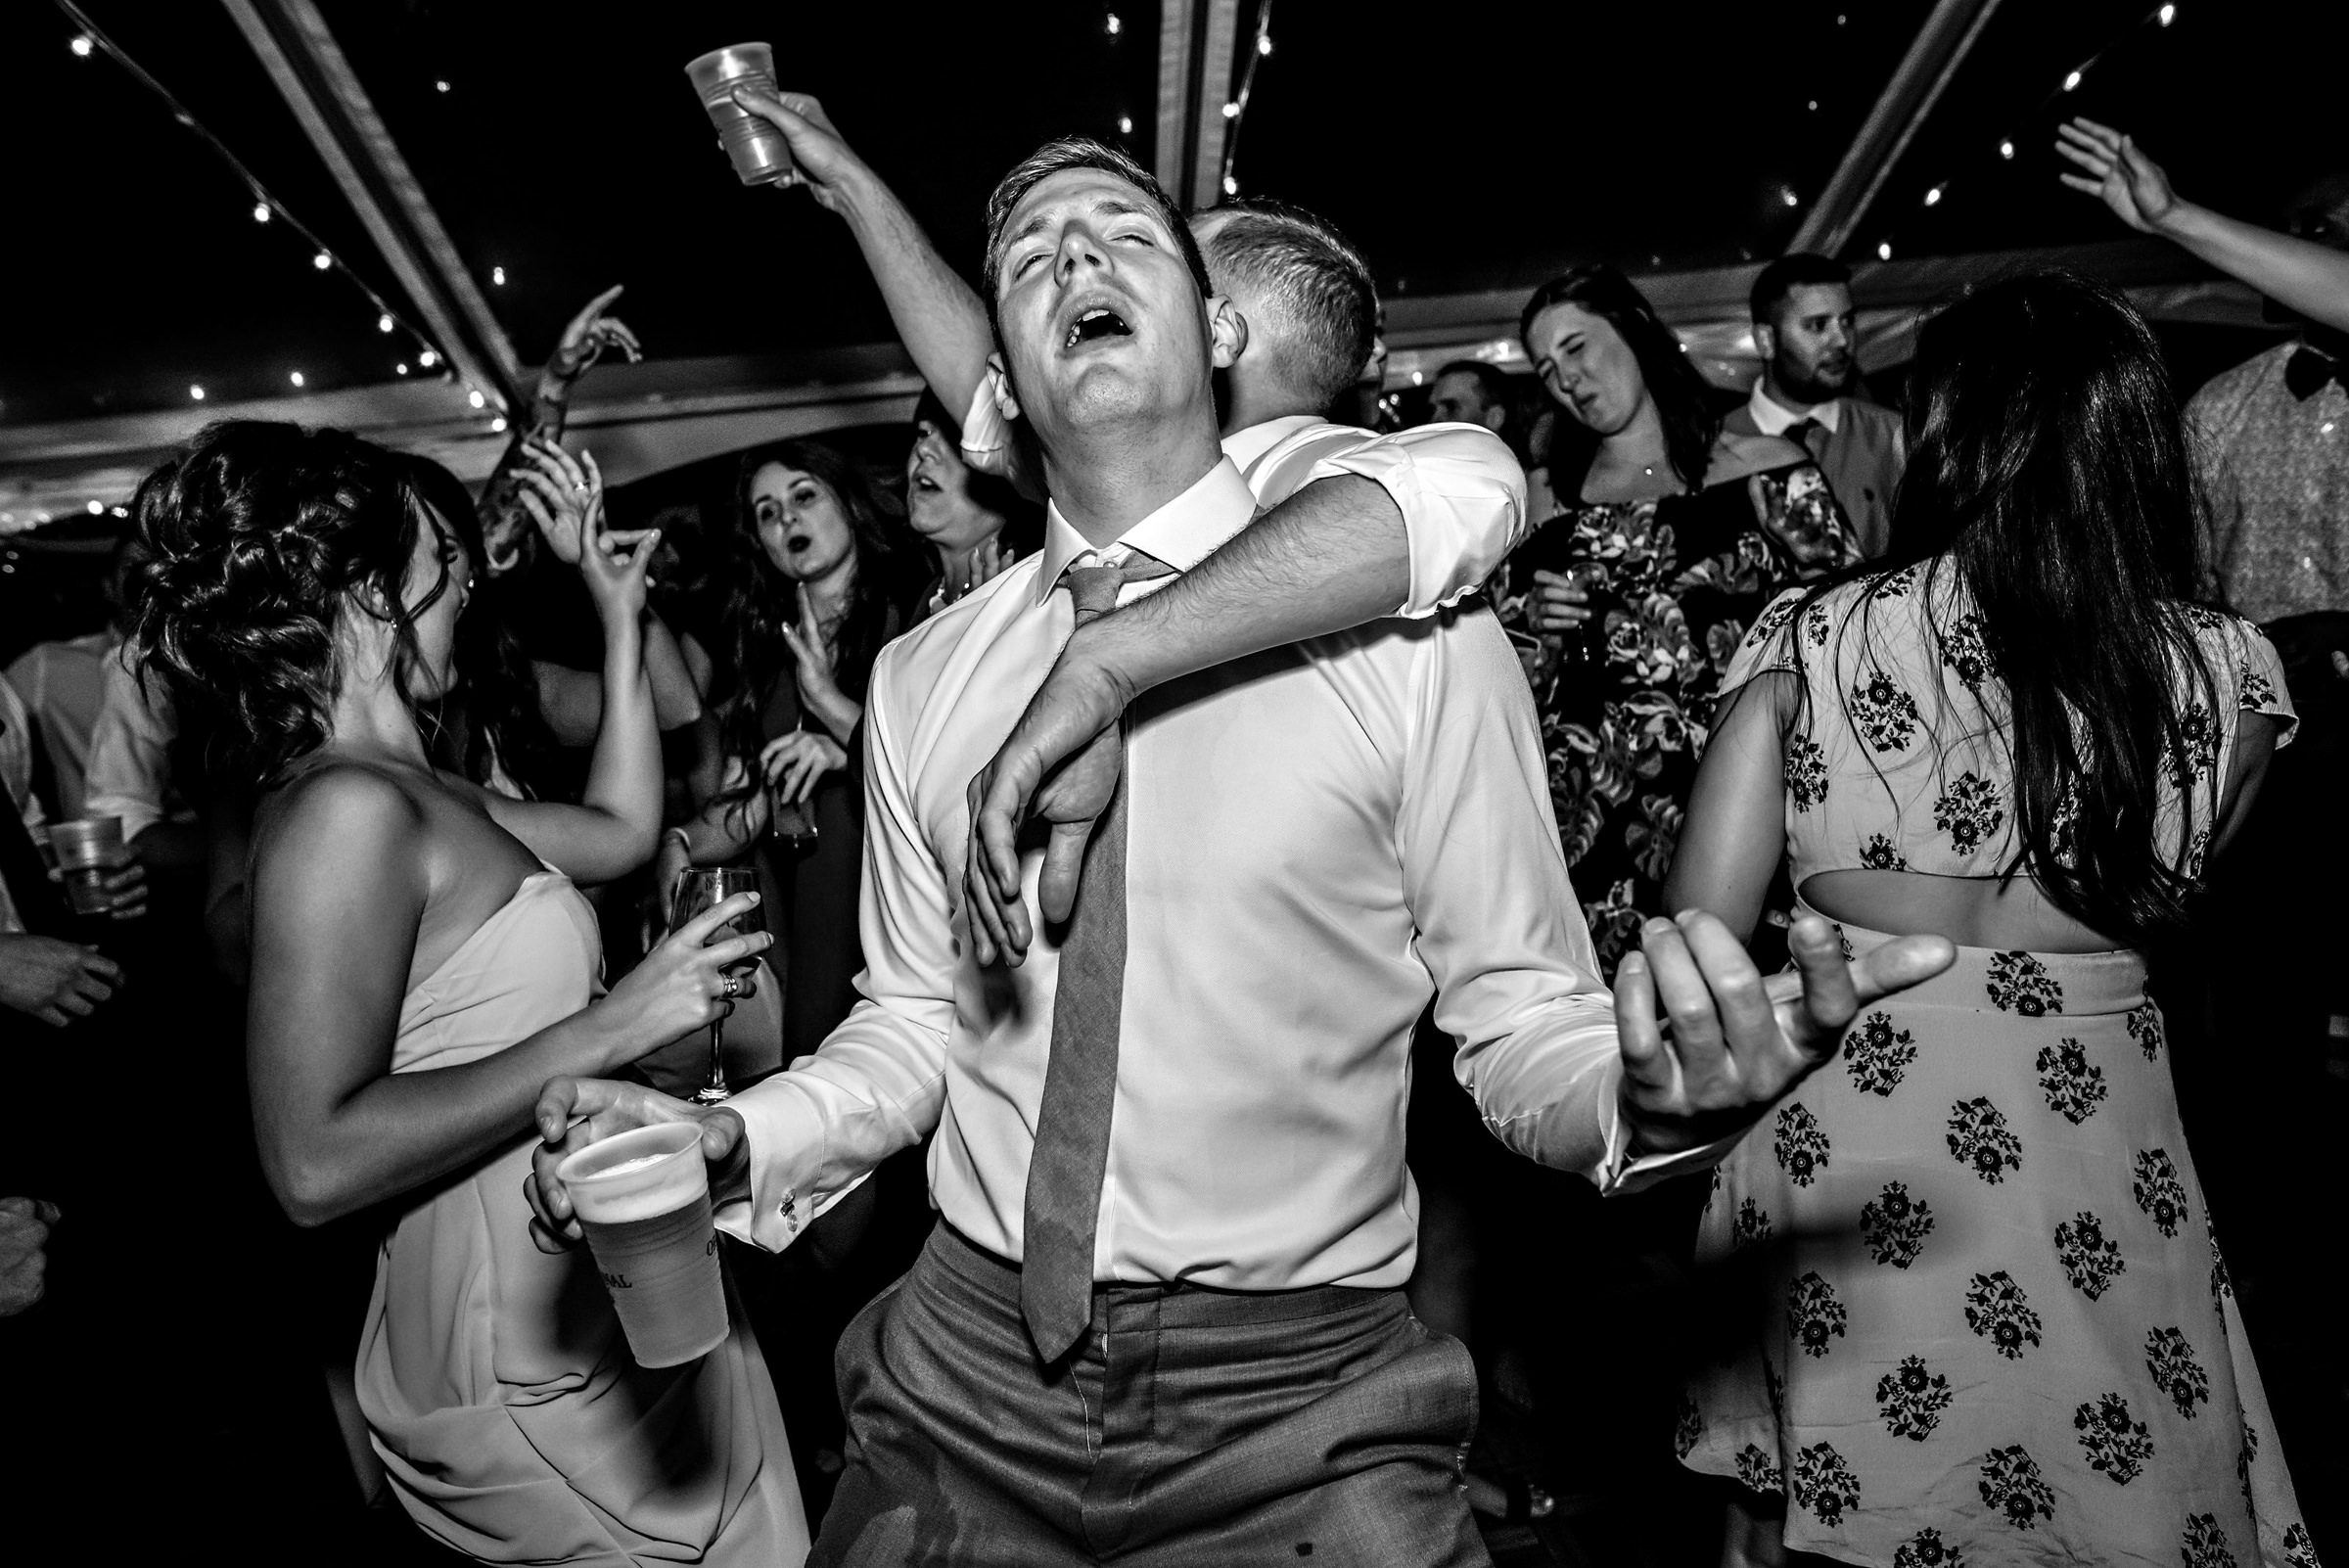 Crazy dance floor photo by Moore Photography